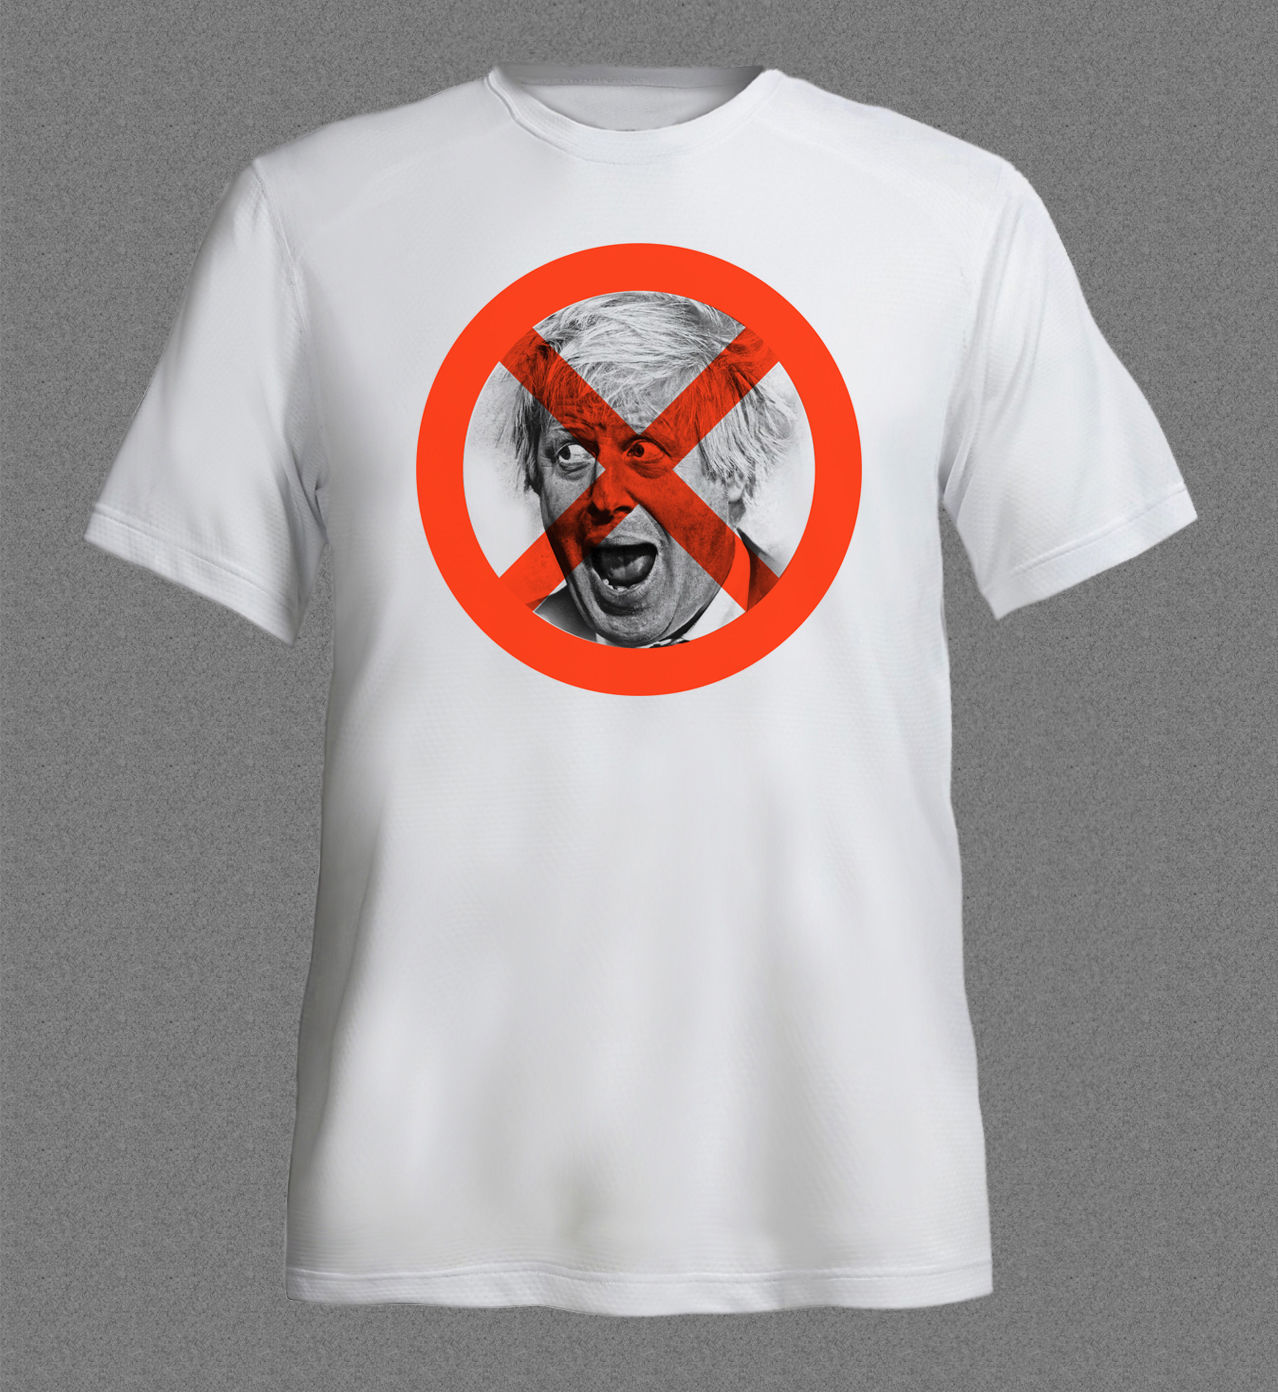 T Shirt Gift More Size And Colors EU STAY European Union Anti BORIS JOHNSON HOAX Farage T shirt Print T Shirt Summer Style-in T-Shirts from Men's Clothing & Accessories on Aliexpress.com | Alibaba Group